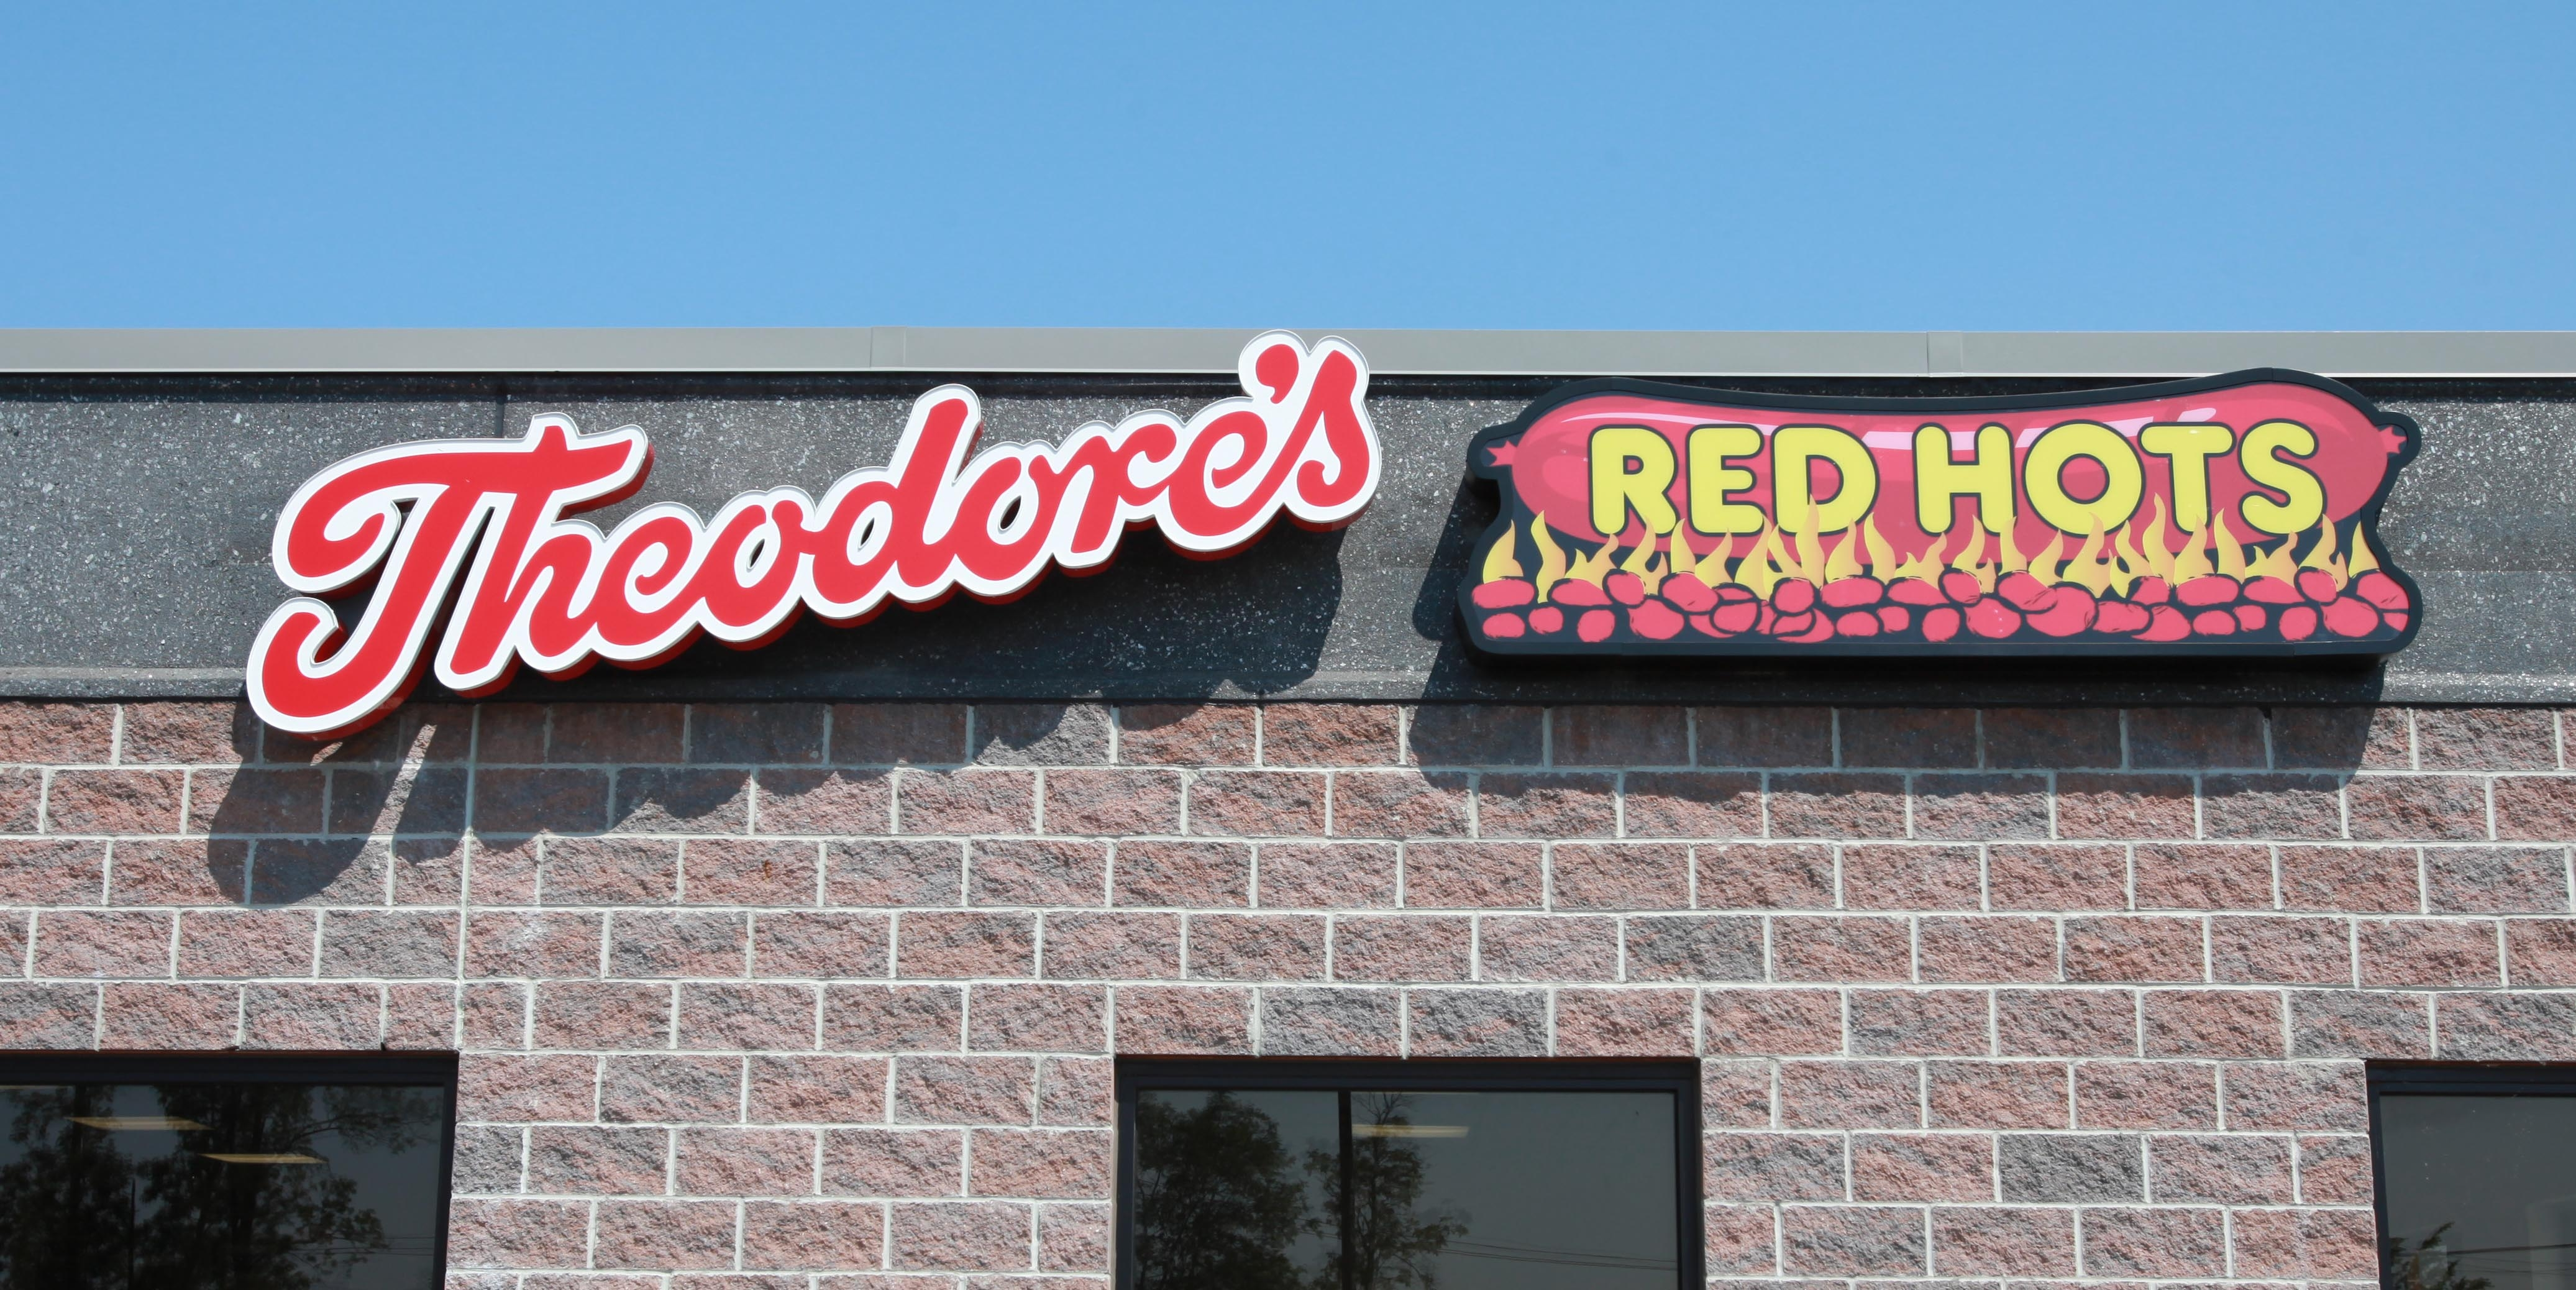 The state Department of Taxation and Finance says it is working with the owners of Theodore's to resolve the tax bill.